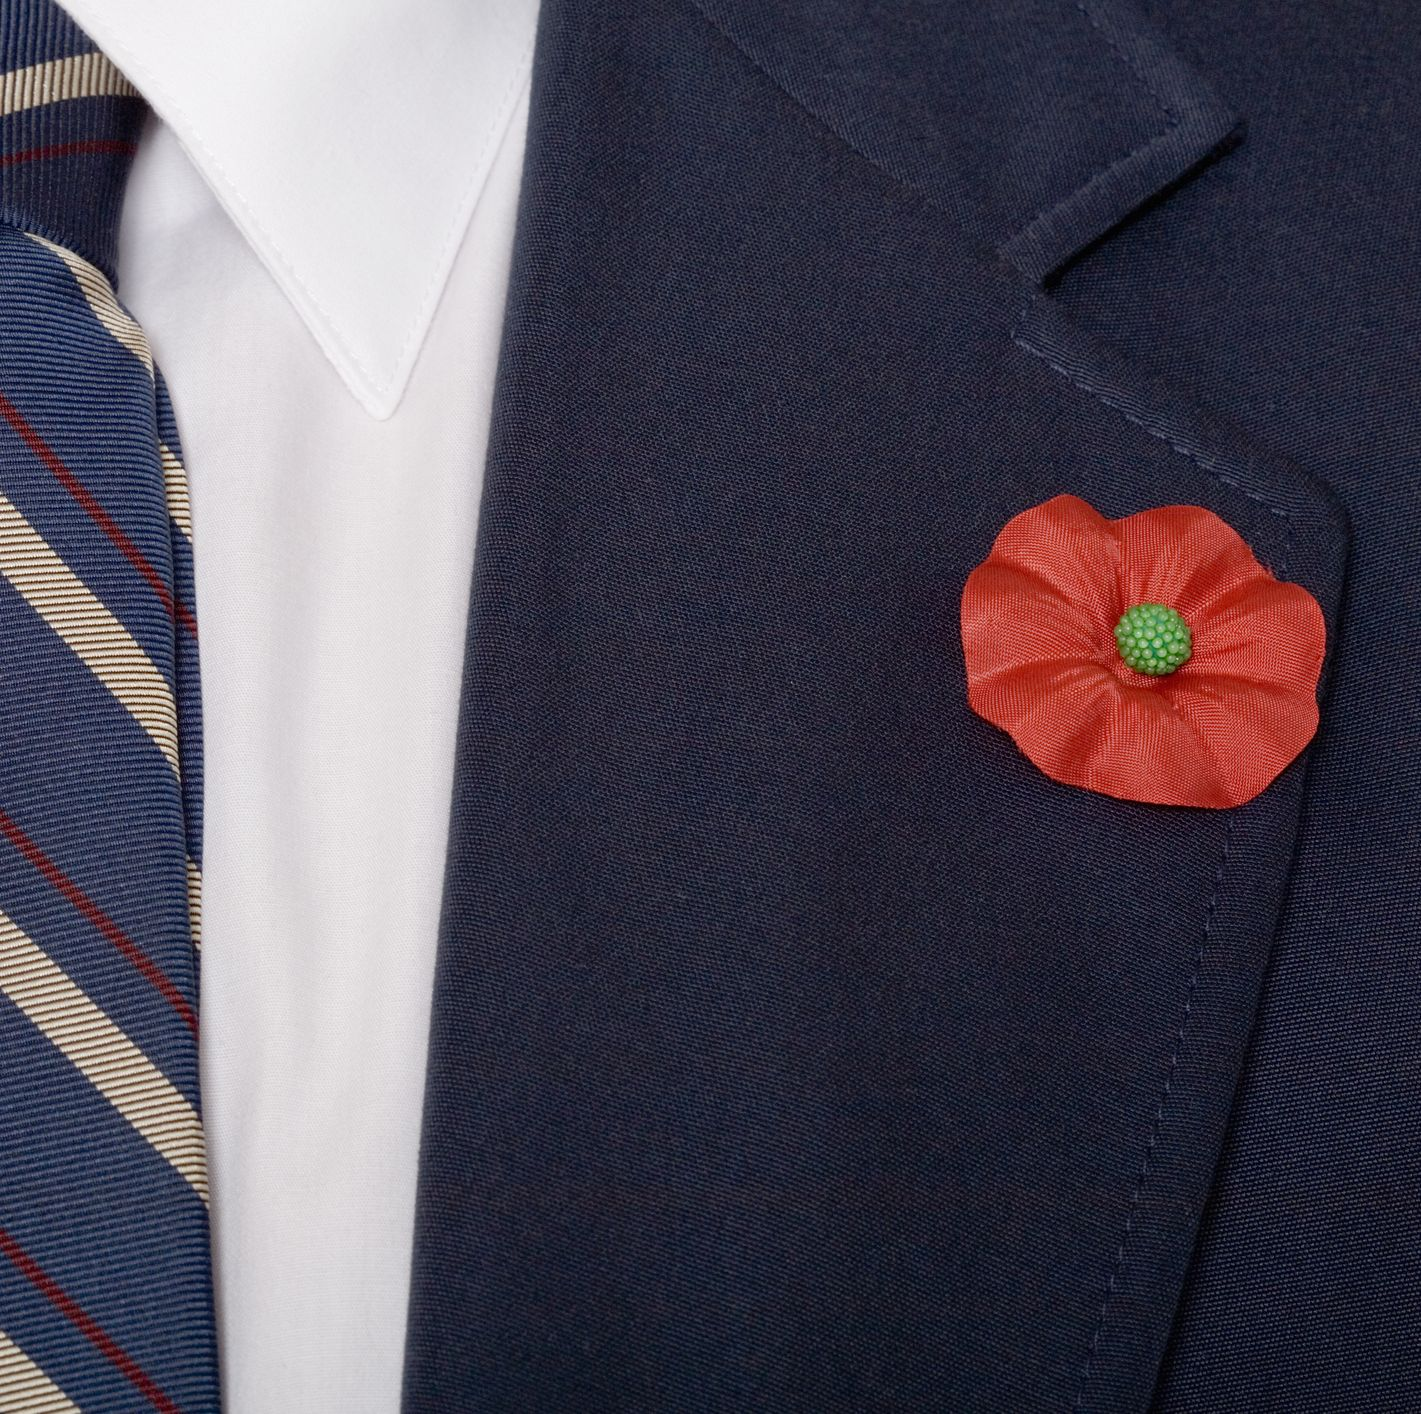 Everything You Need to Know About the Symbolism Behind Memorial Day Poppies